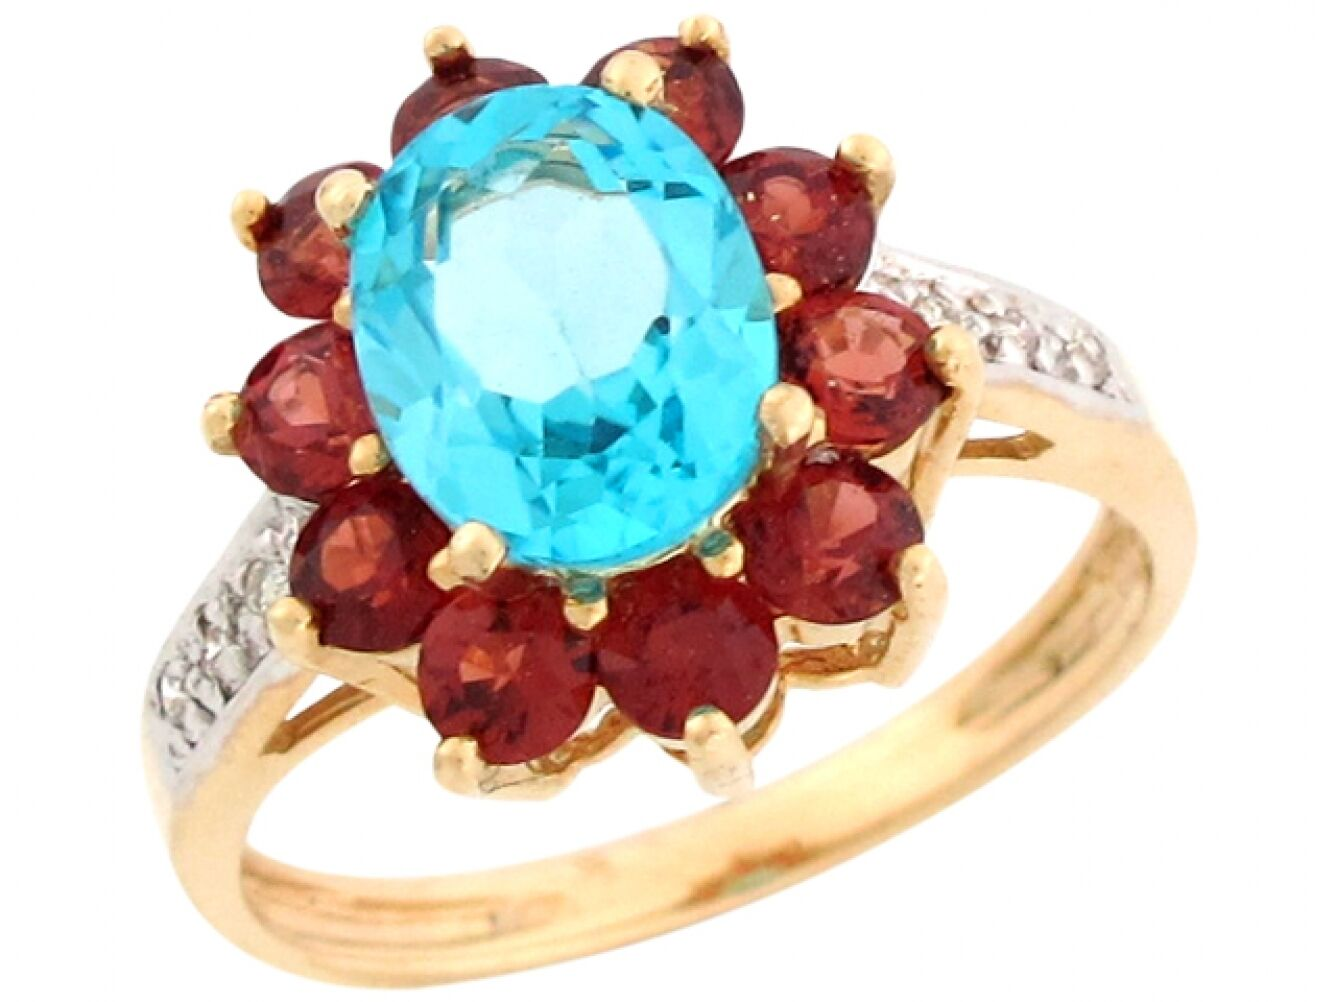 10k   14k Two-Tone gold bluee Topaz with Garnet and Diamond Ladies Exquisite Ring